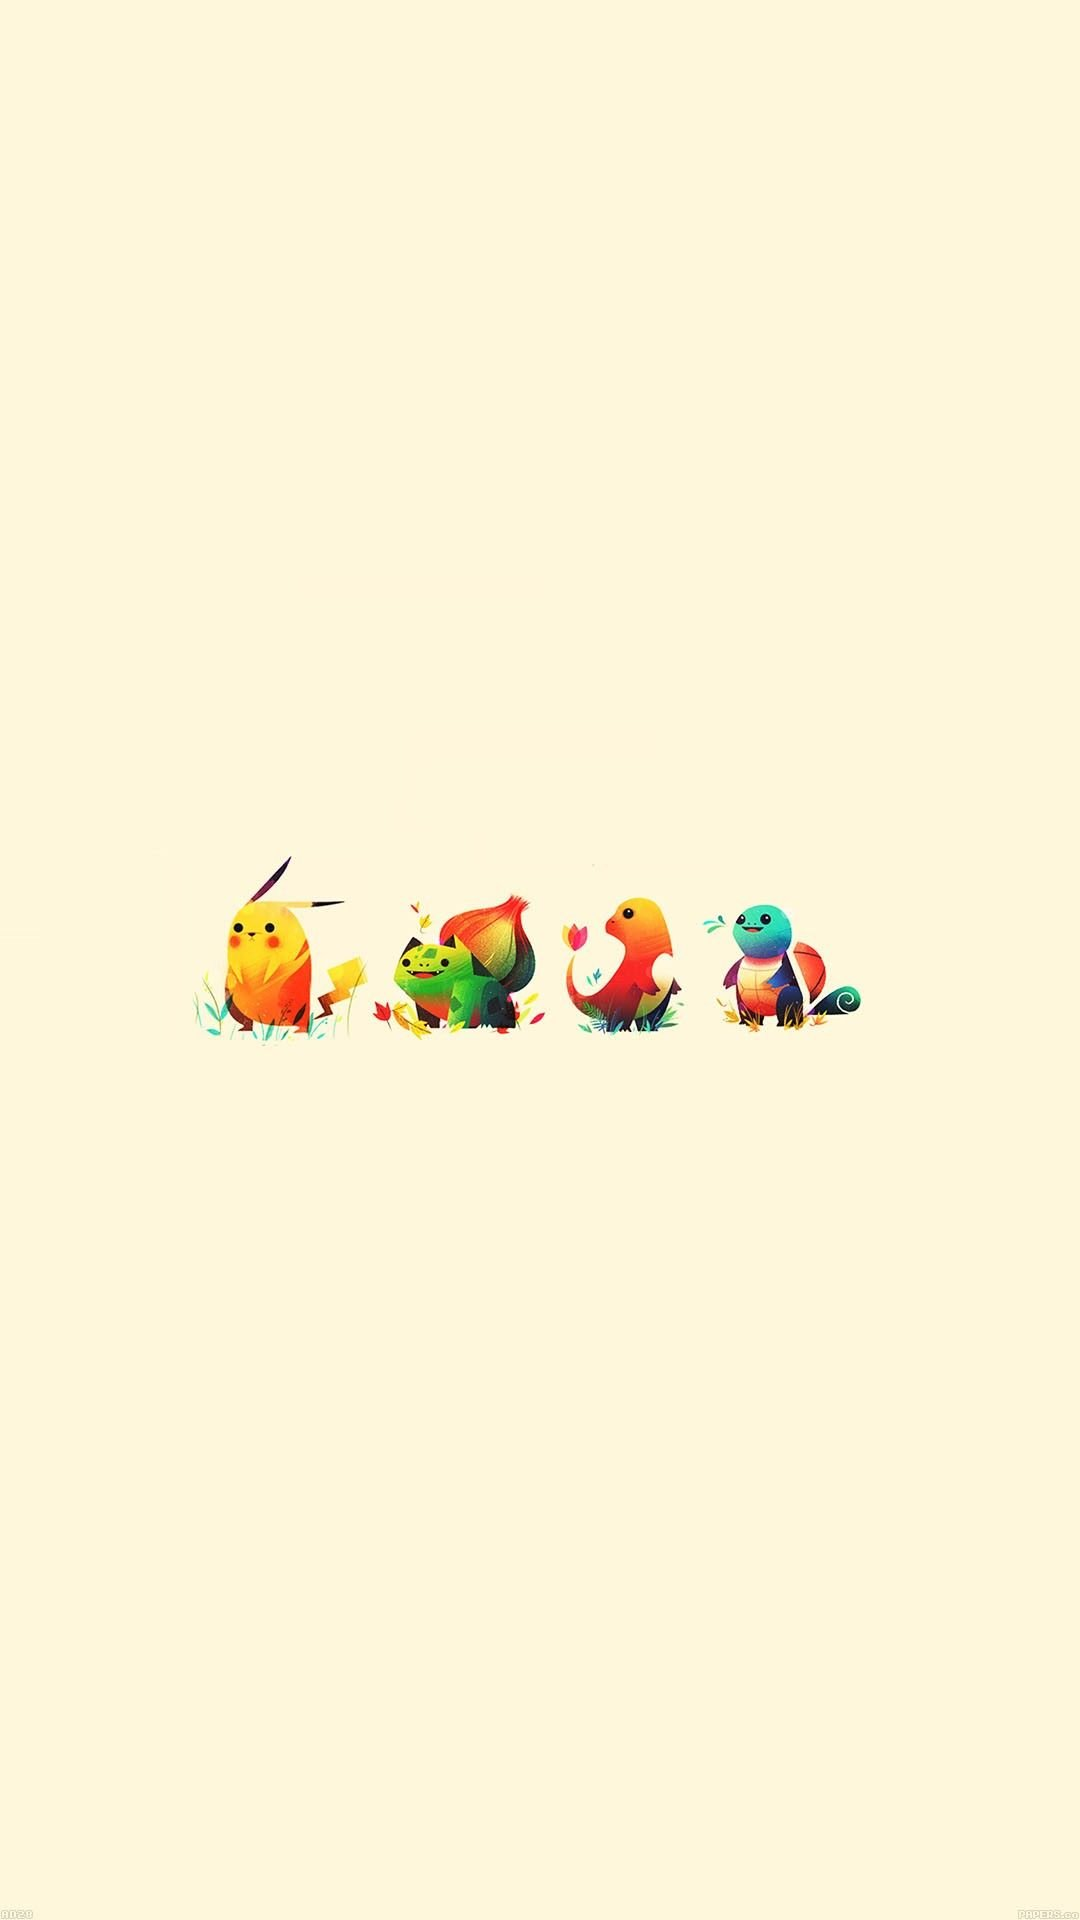 1080x1920 Cute Pokemon iPhone Backgrounds. - Media file | PixelsTalk.Net